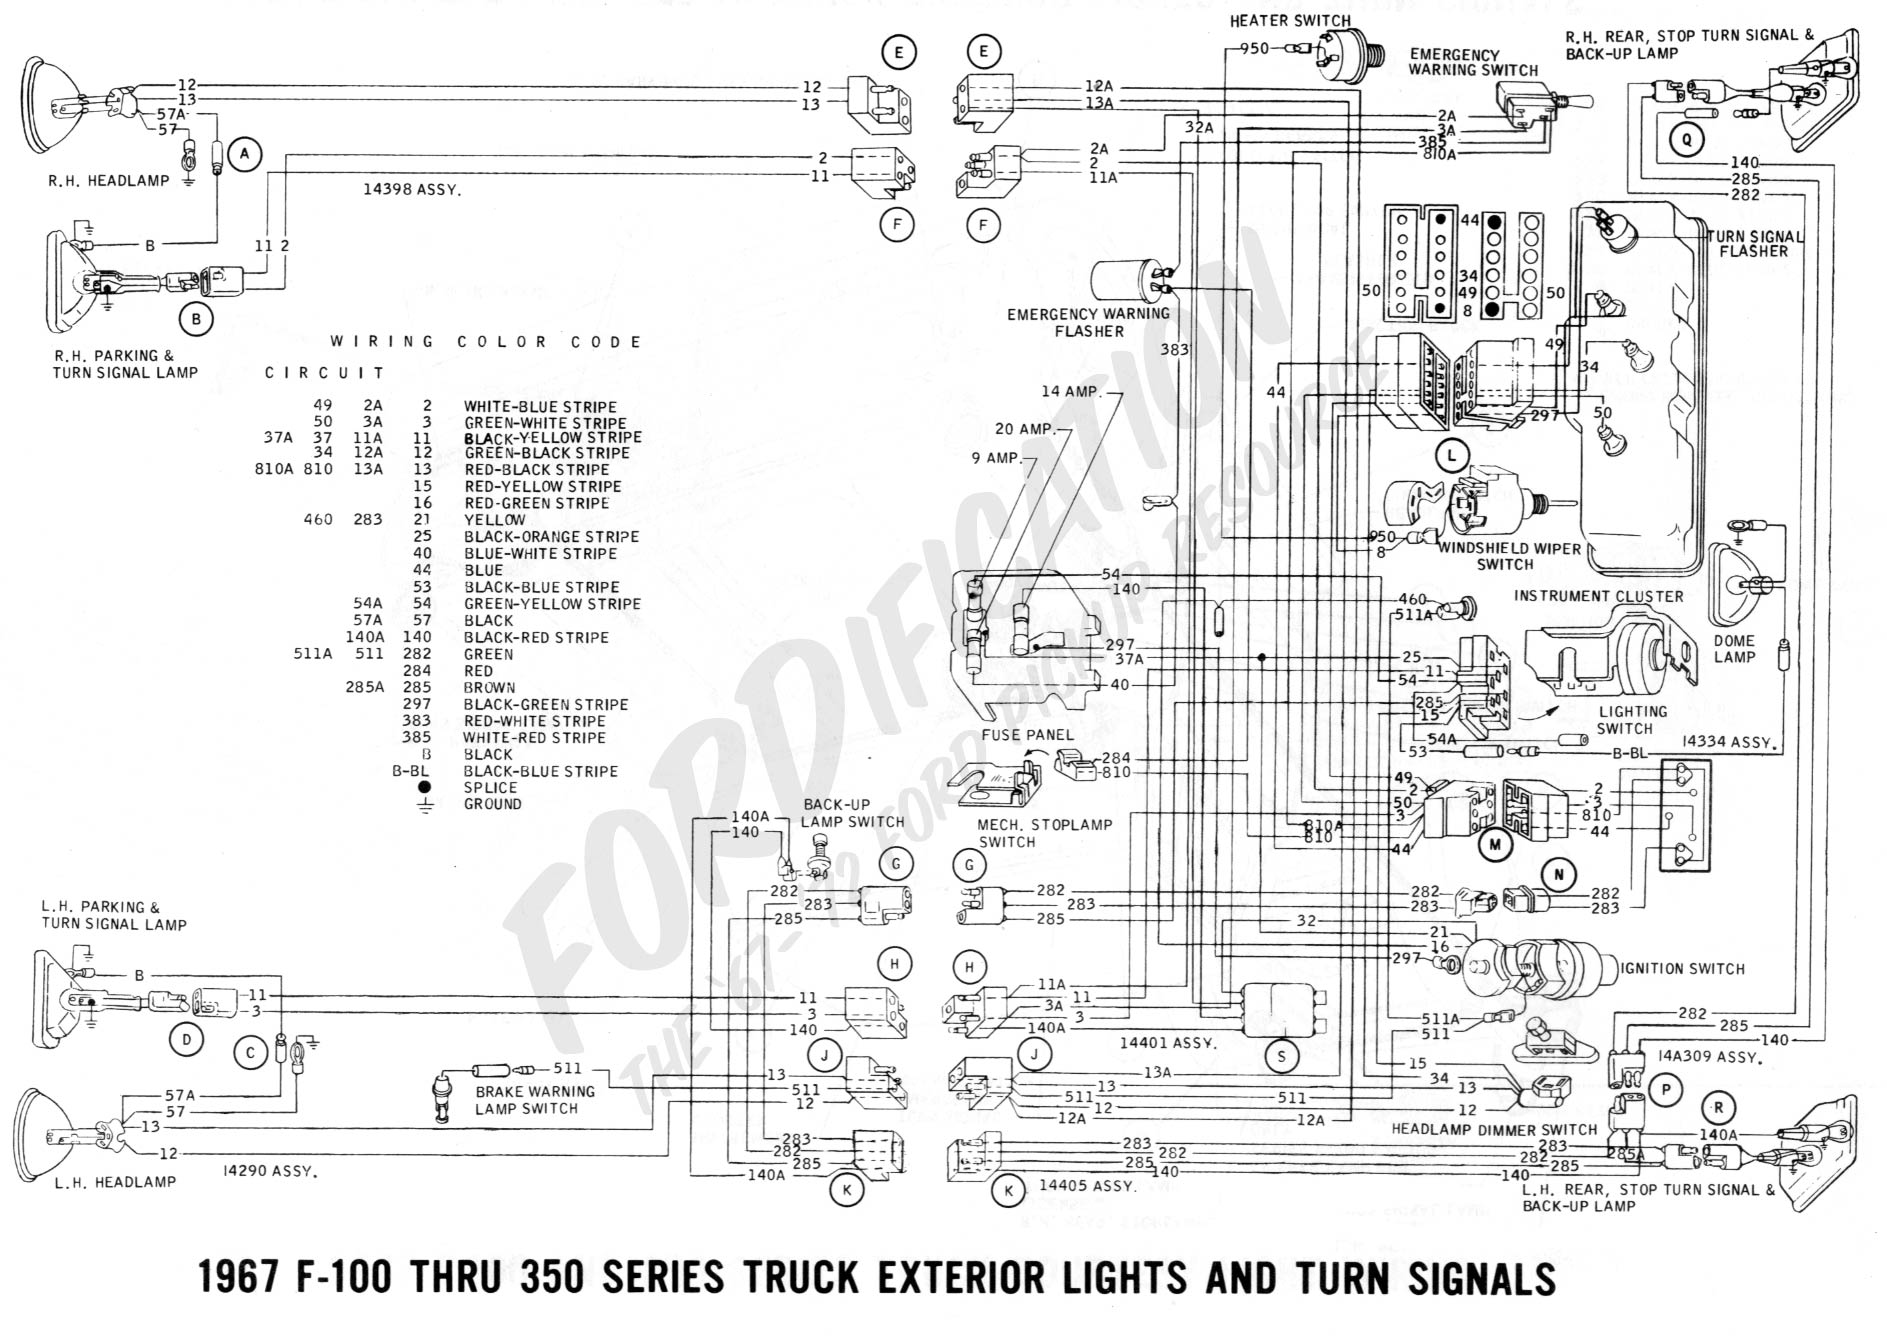 E350 Ford 1997 Fuse Box Diagram Wiring Library 1999 F350 Panel Under Dash Truck Technical Drawings And Schematics Section H 2002